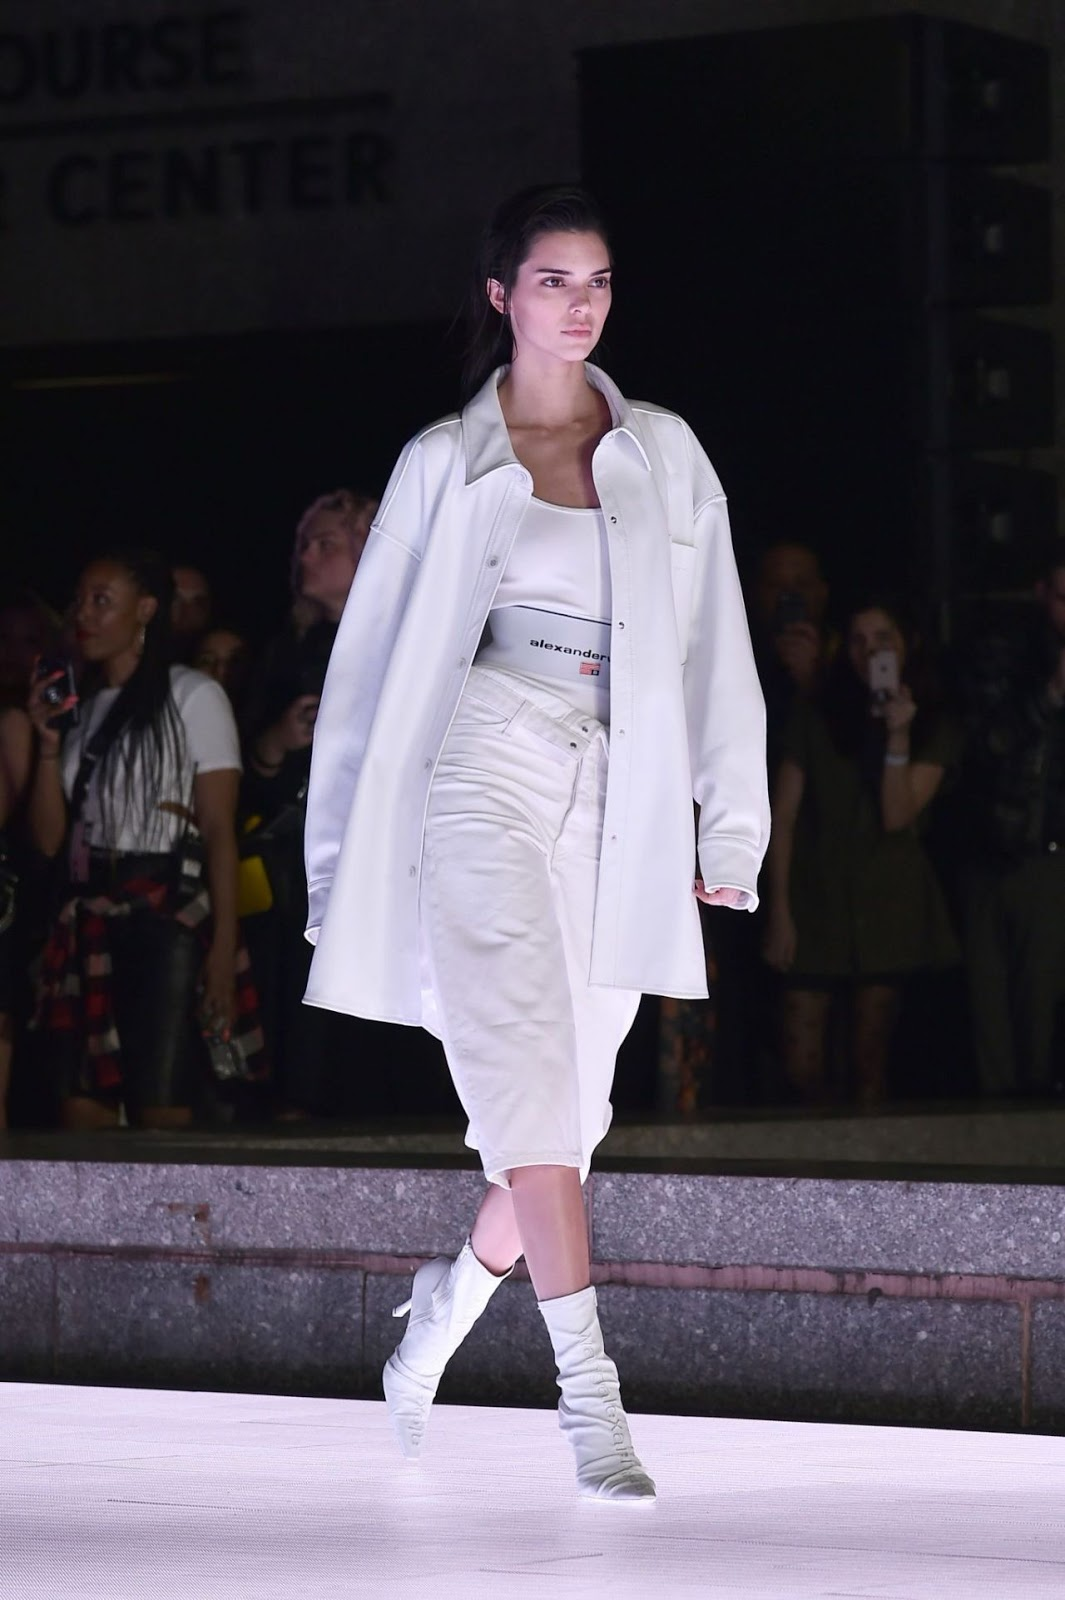 Kendall Jenner Walks Alexander Wang Collection 1 Fashion Show in NYC